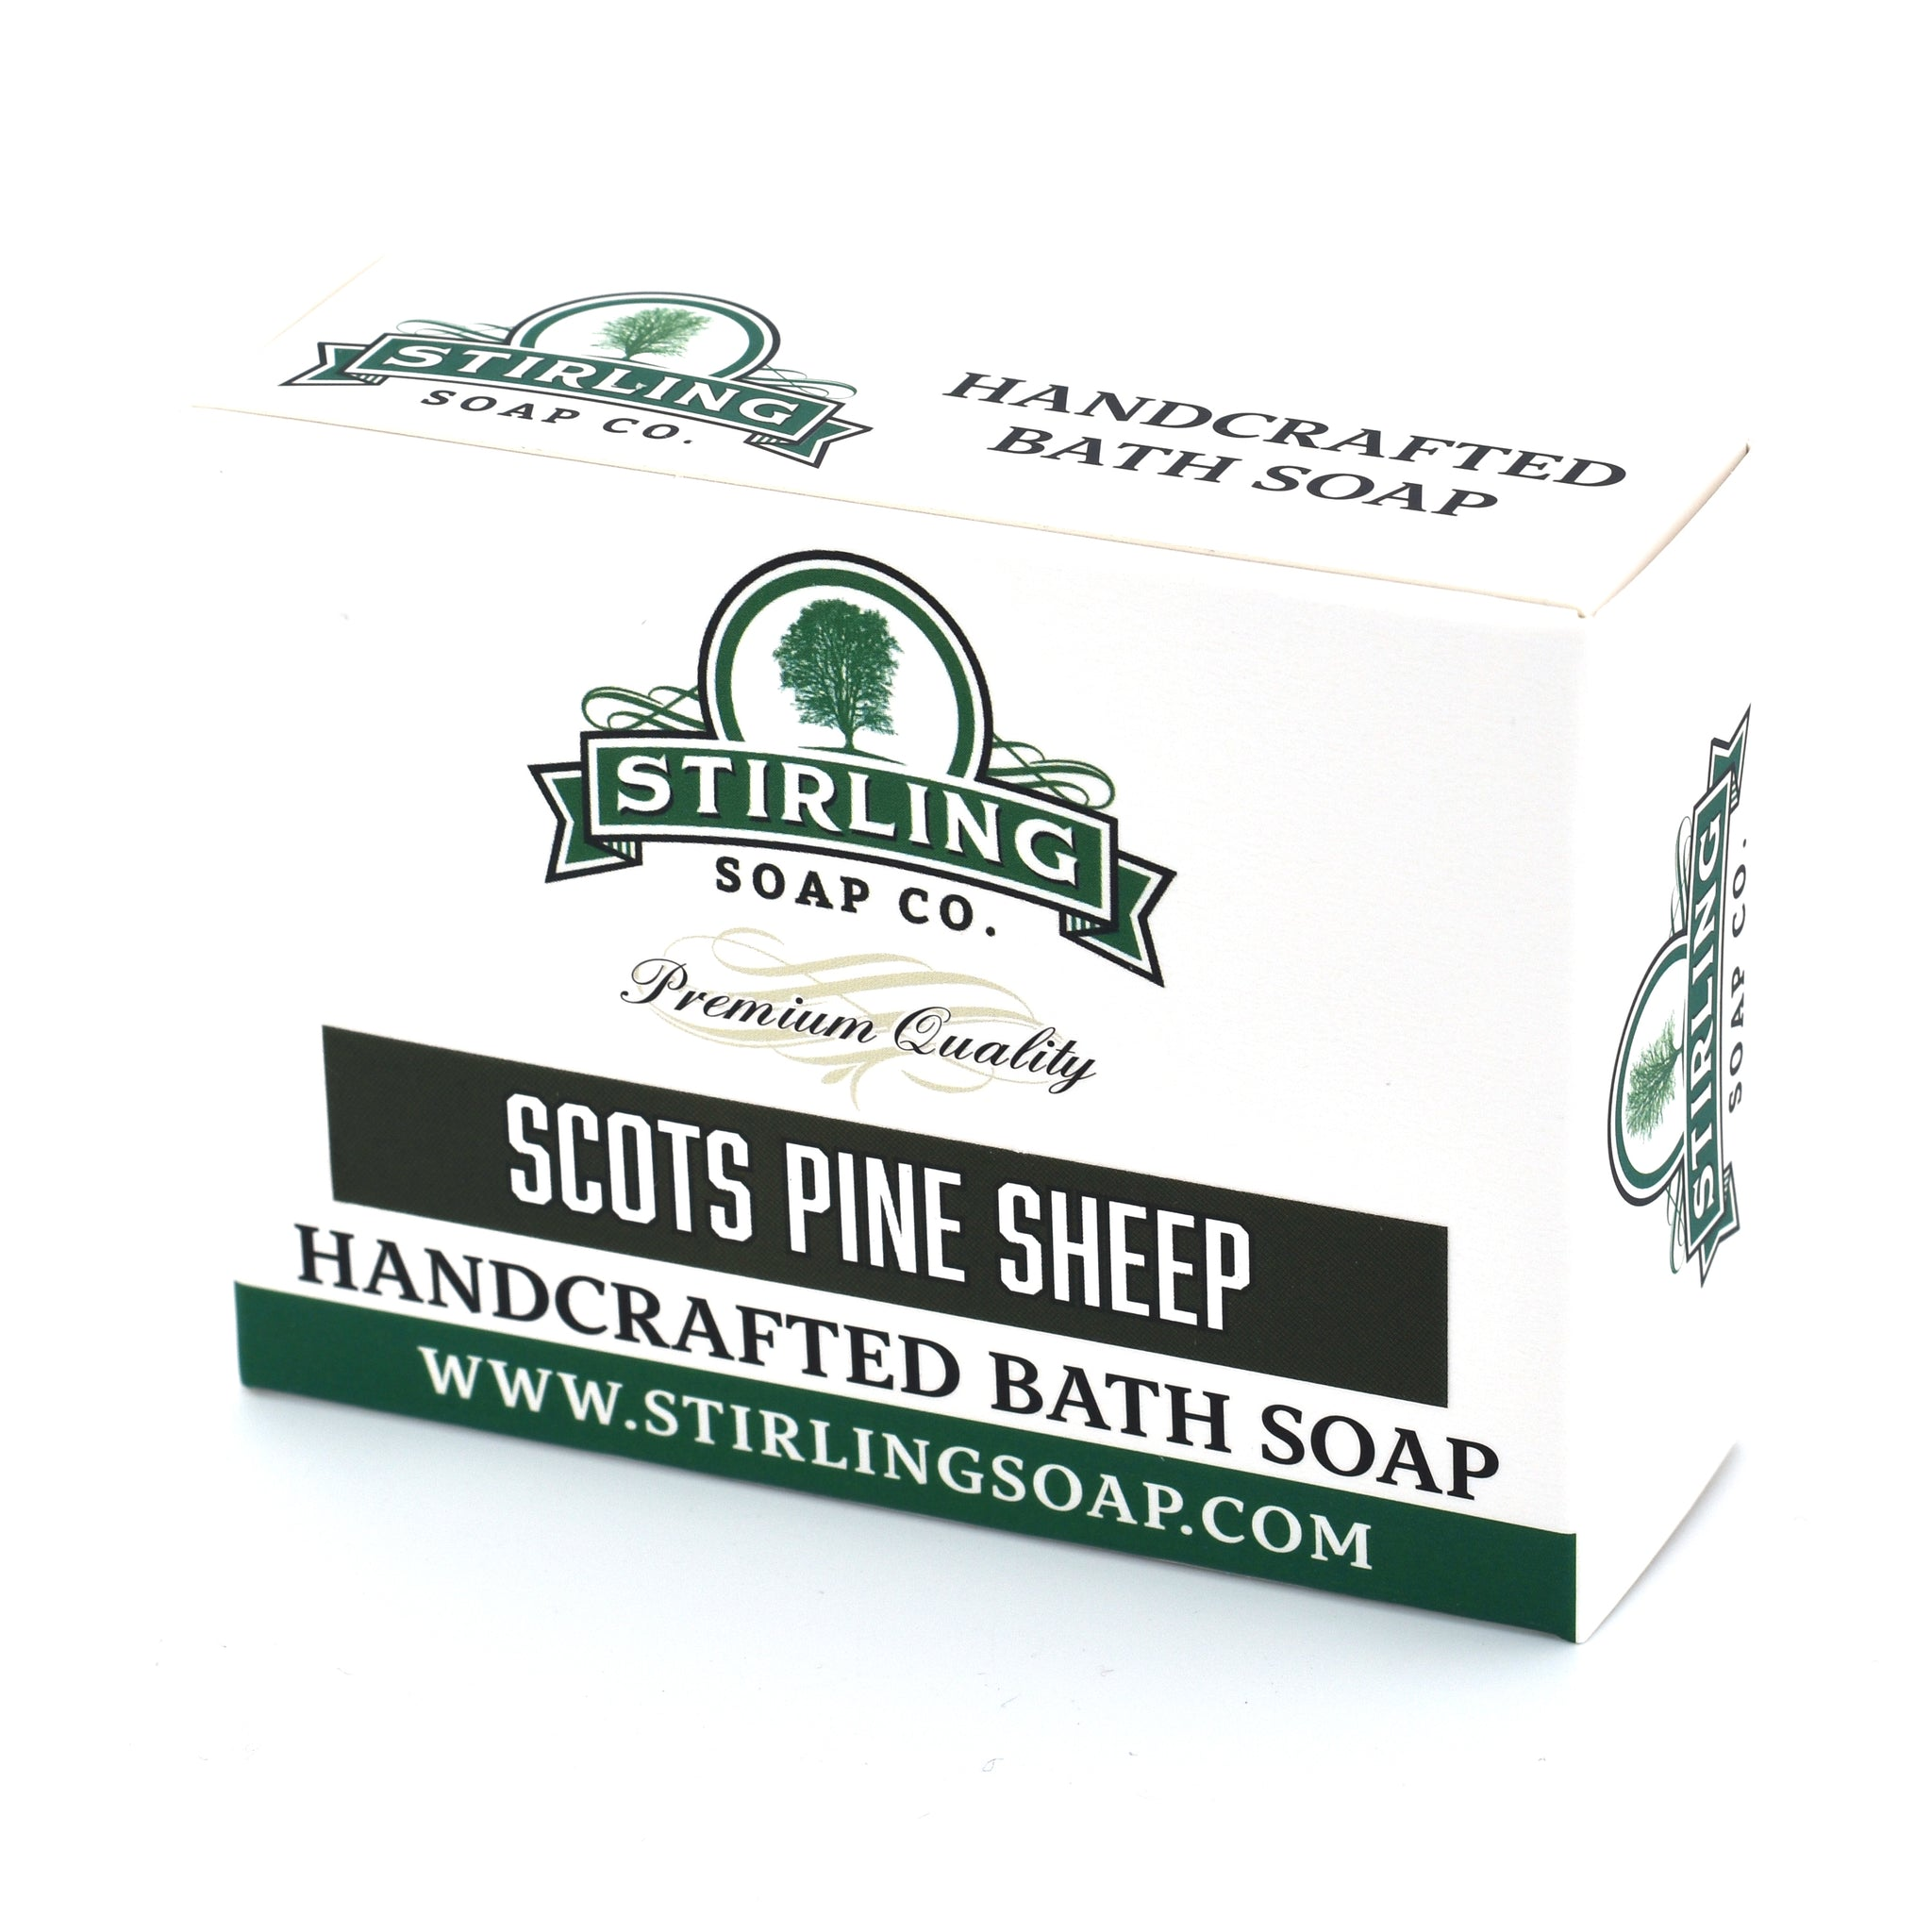 Scots Pine Sheep - Bath Soap